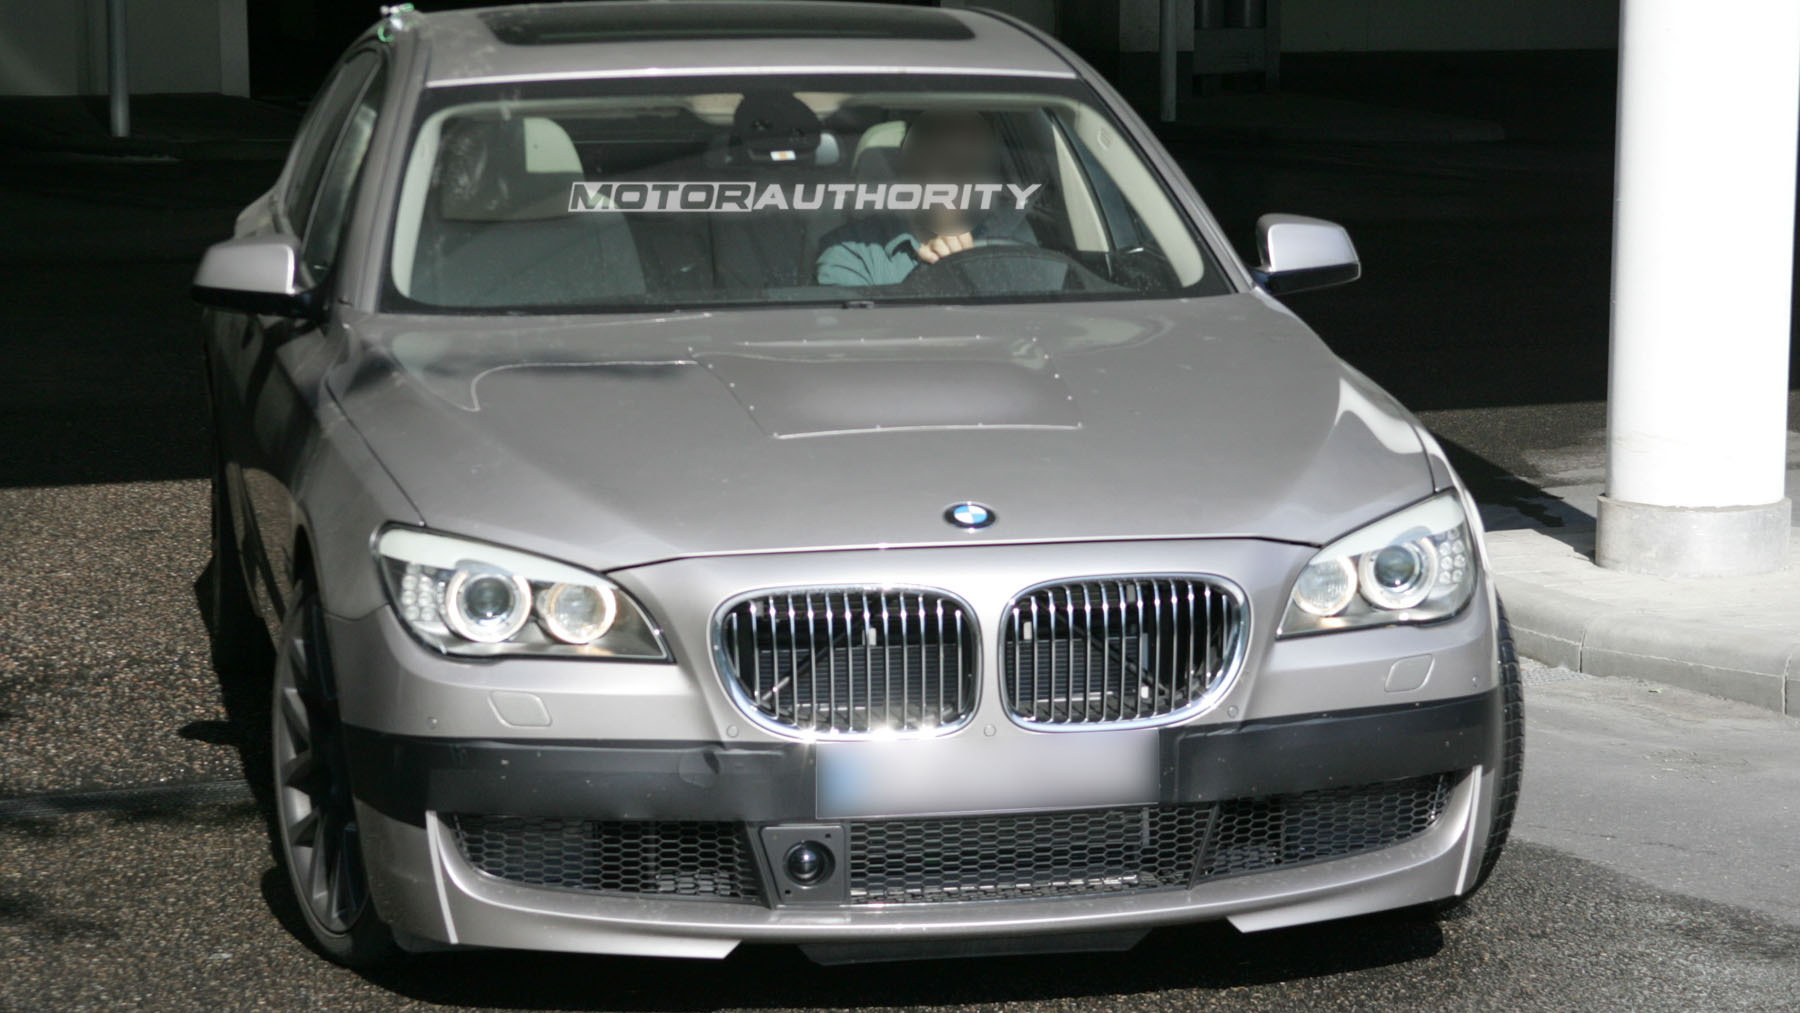 2011 bmw m7 7 series spy shots june 003